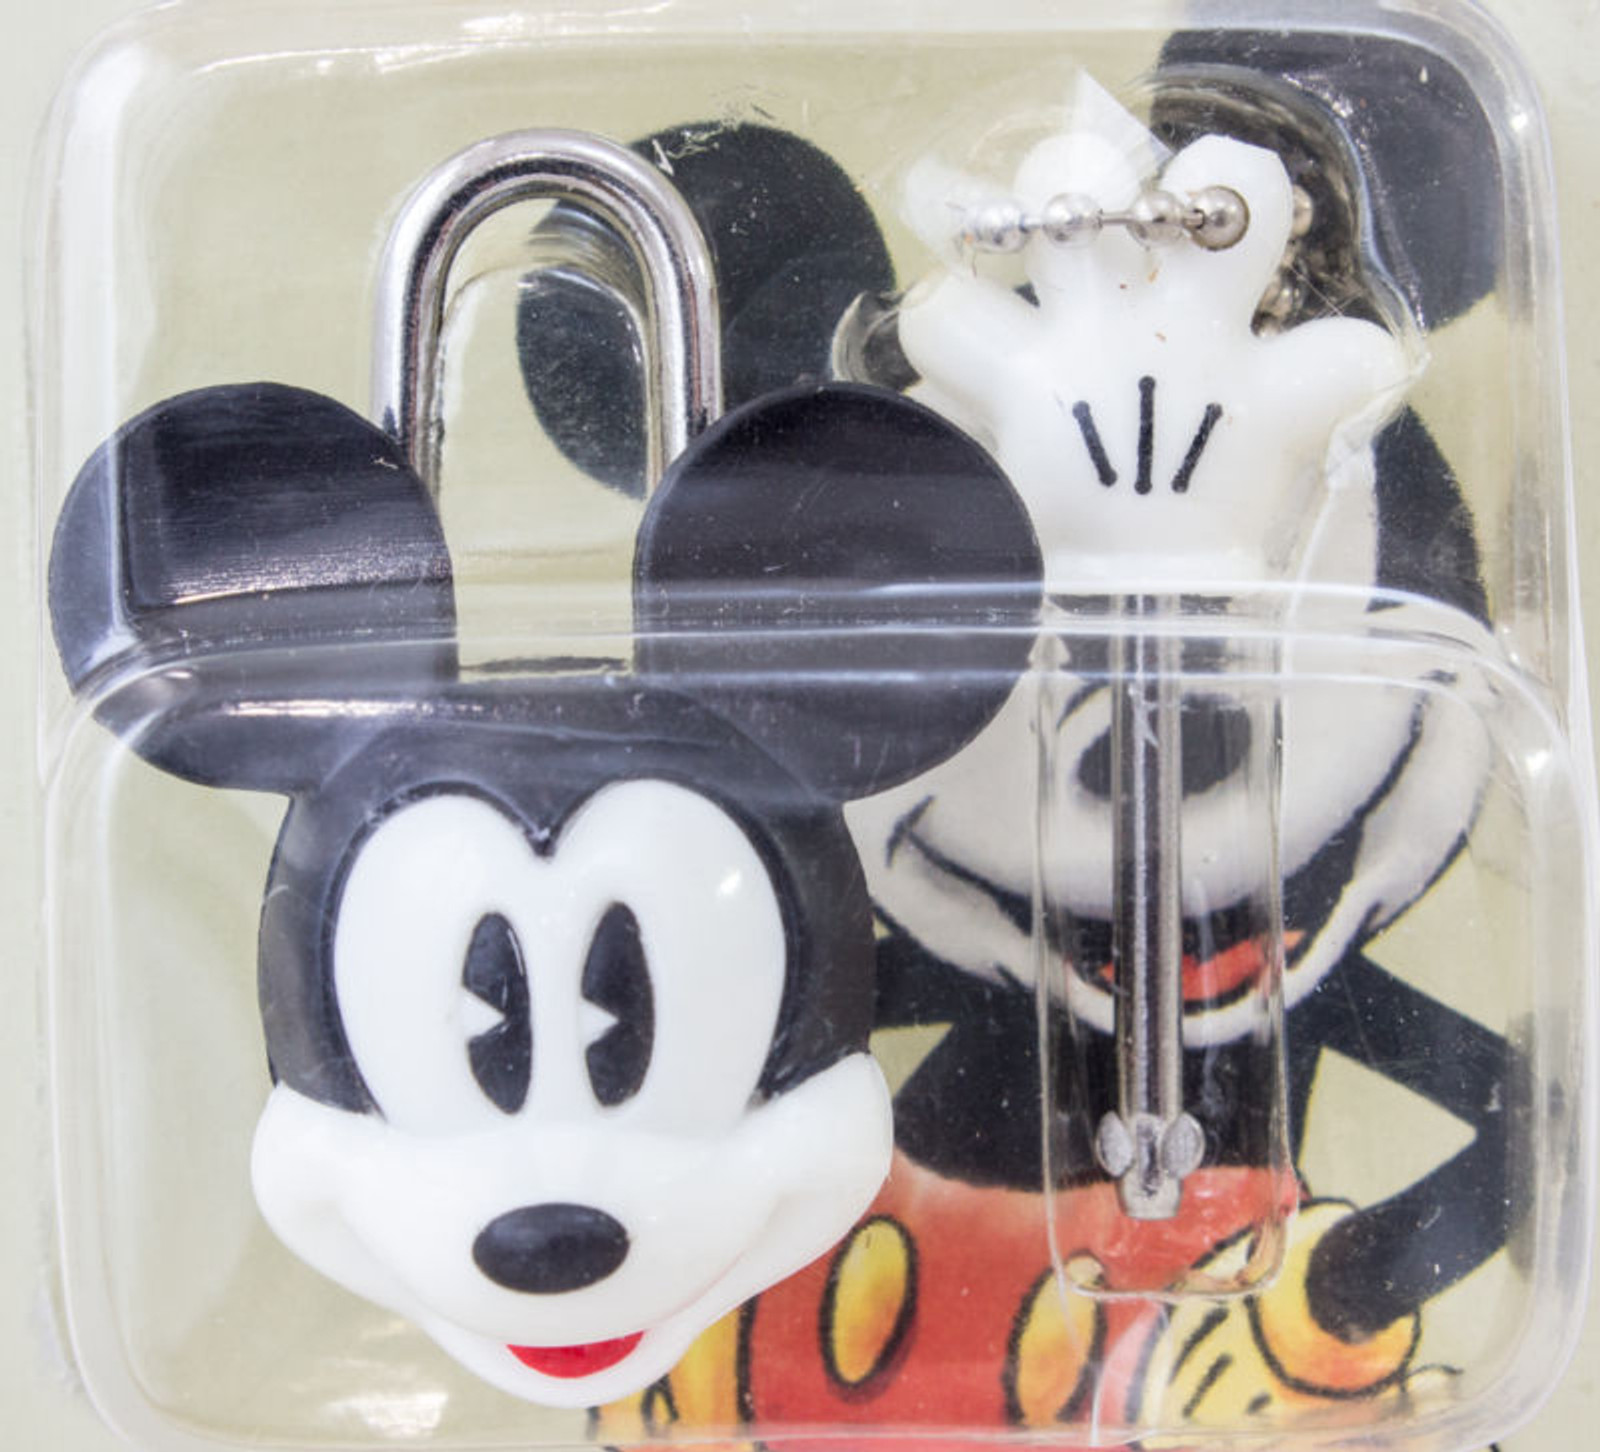 Disney Mickey Mouse Mascot type Padlock JAPAN ANIME FIGURE